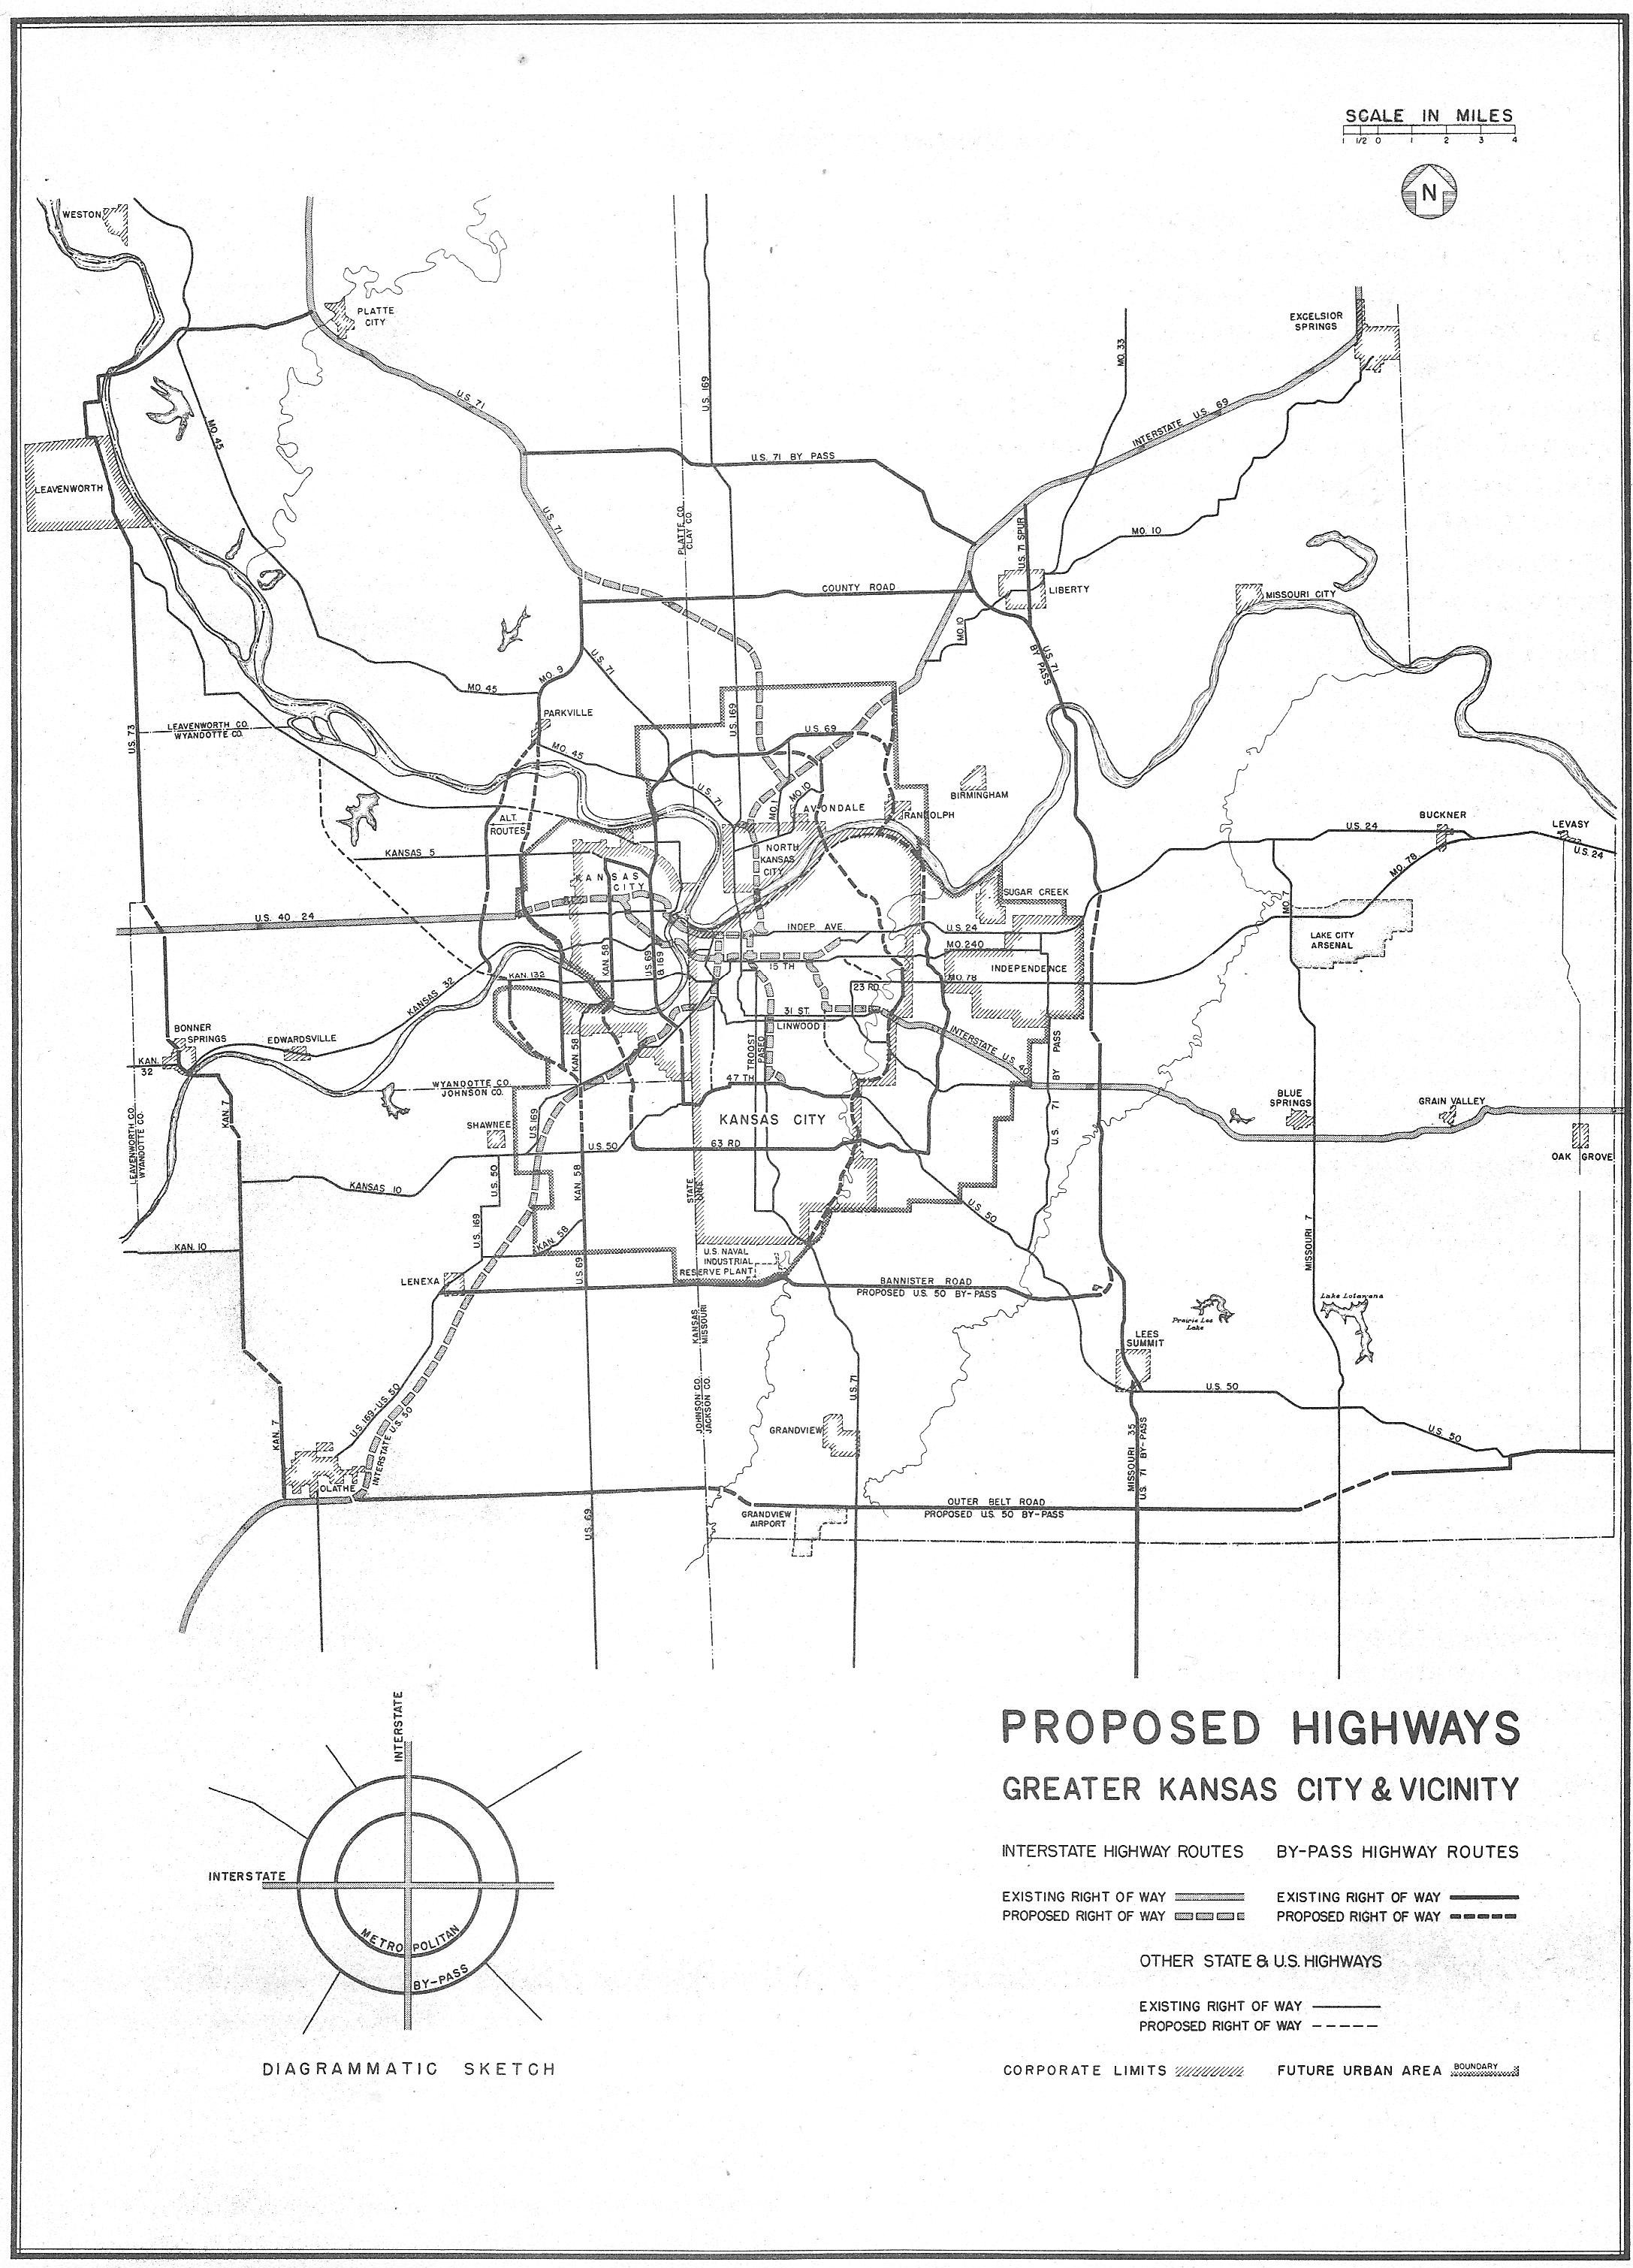 1947 Highway Planning Map The Line Creek Loudmouth